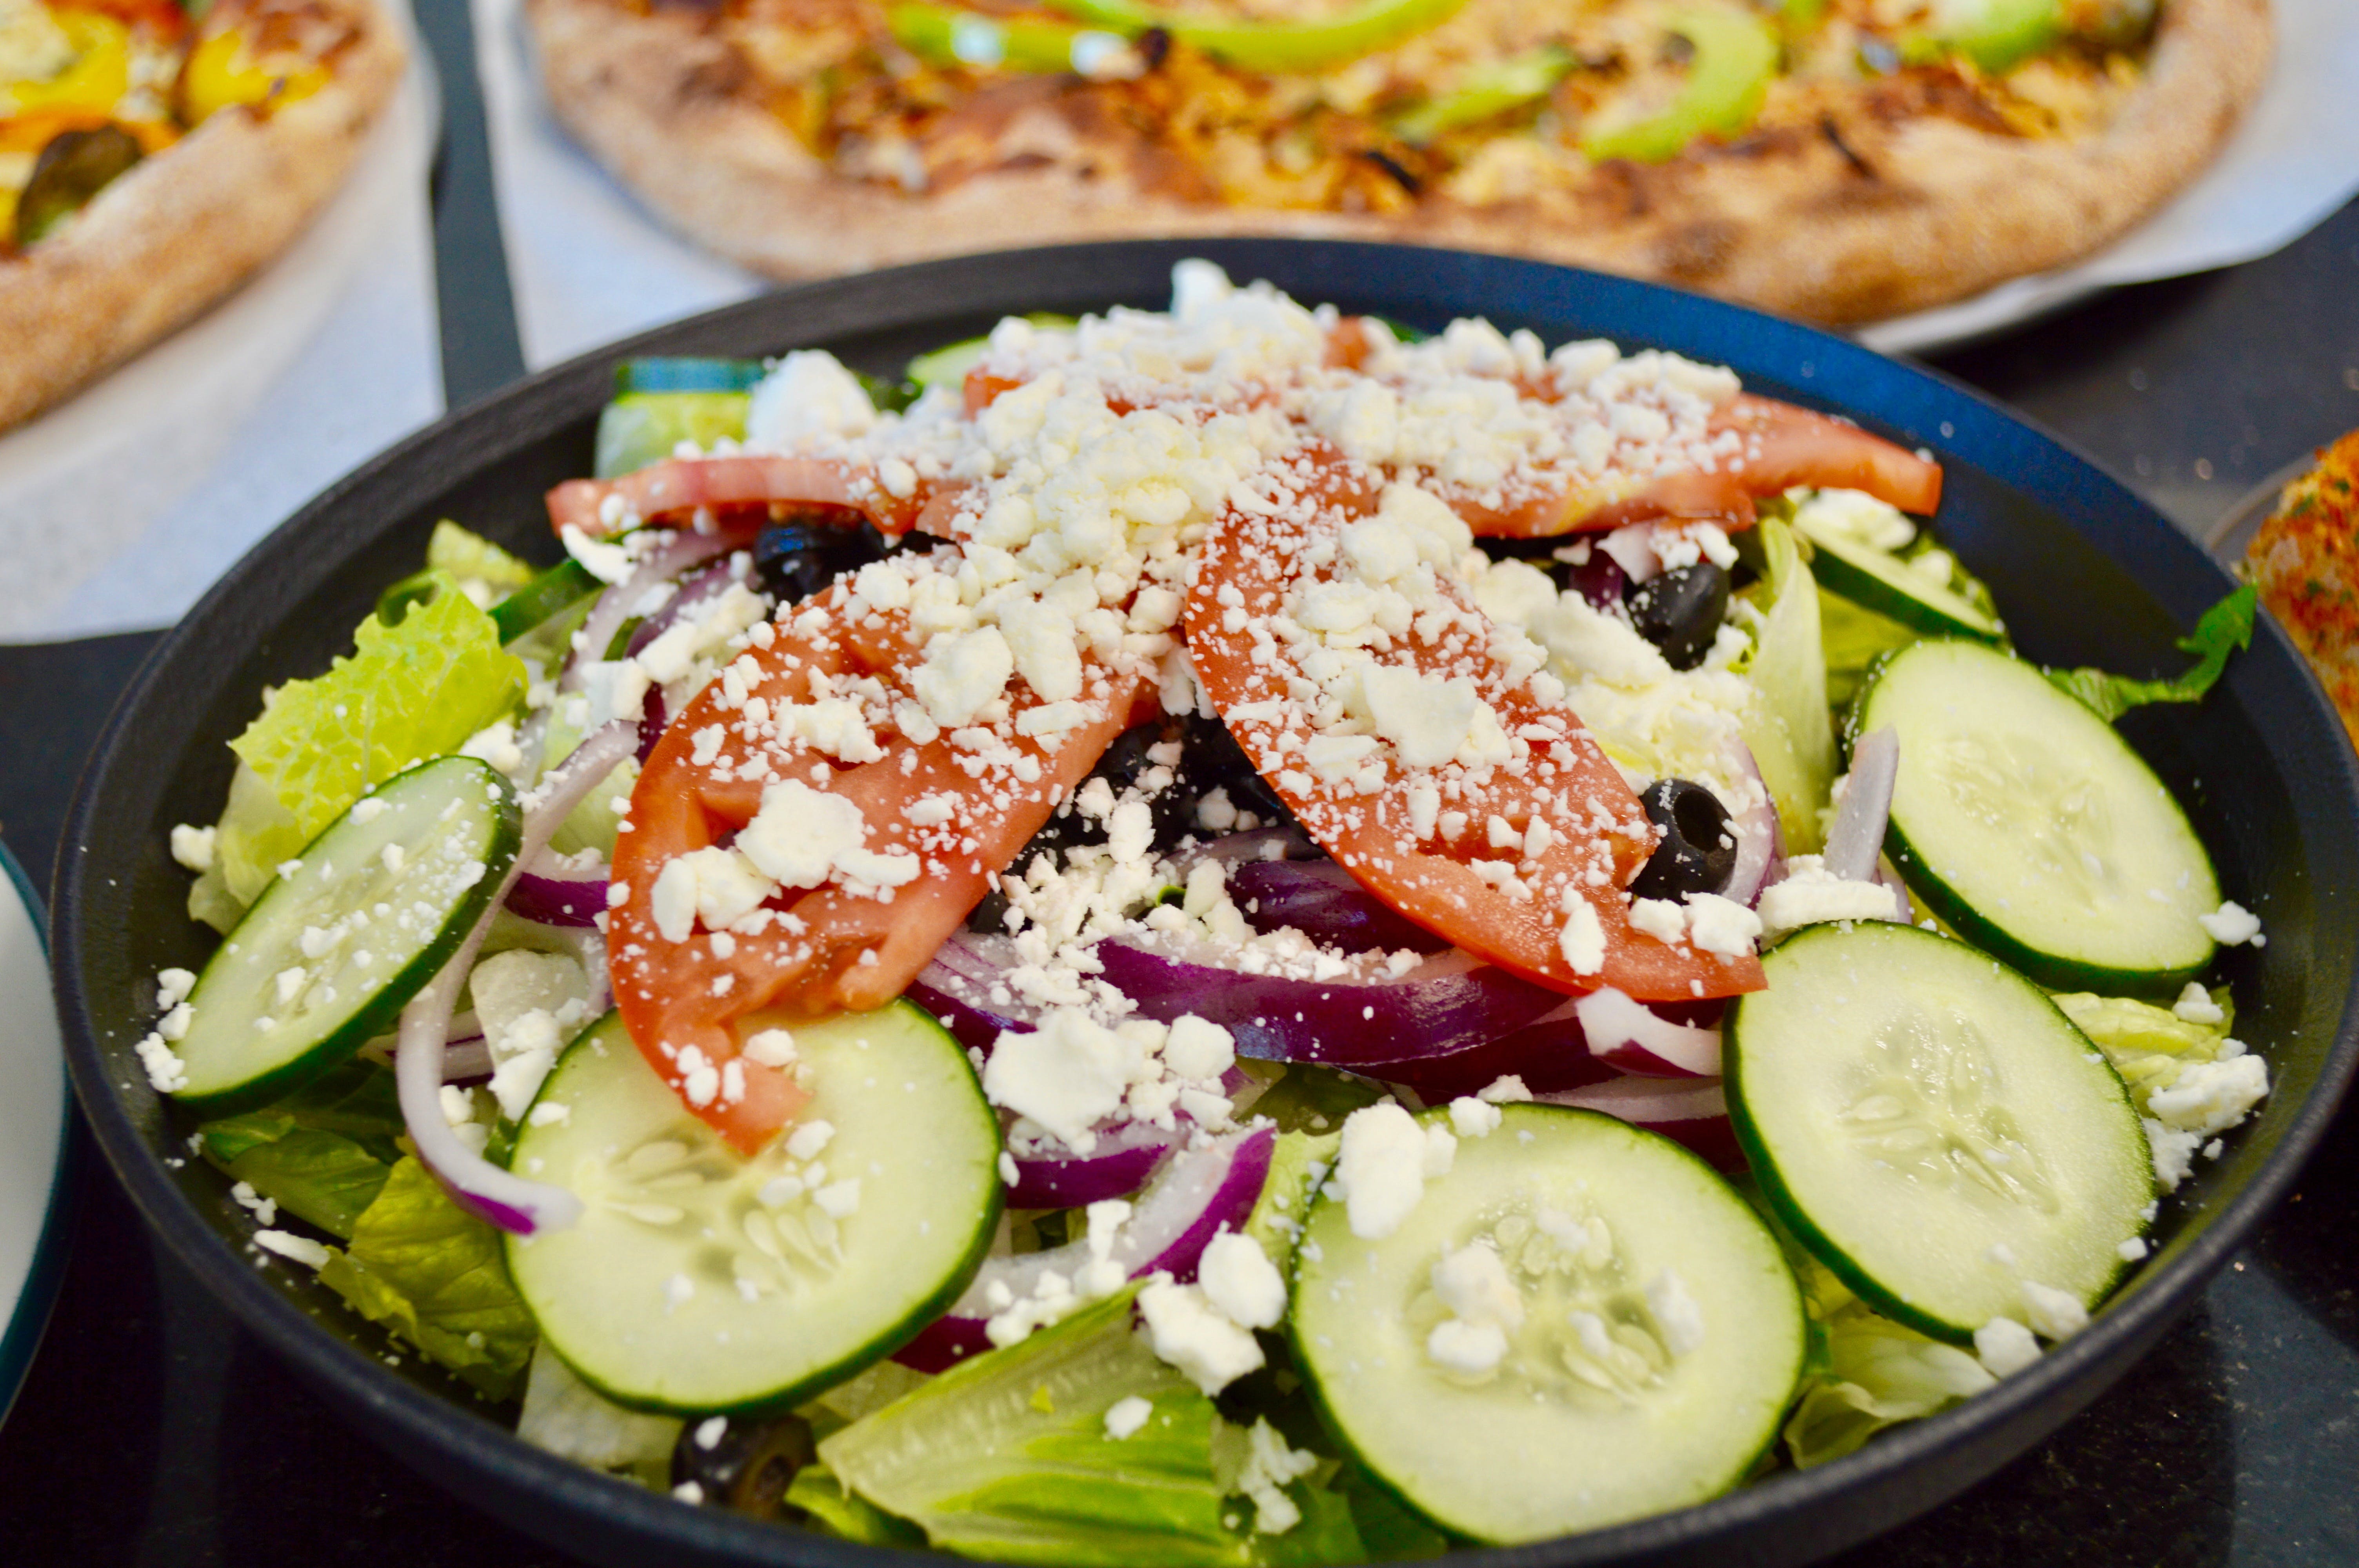 Greek Salad from Ameci Pizza & Pasta - Lake Forest in Lake Forest, CA